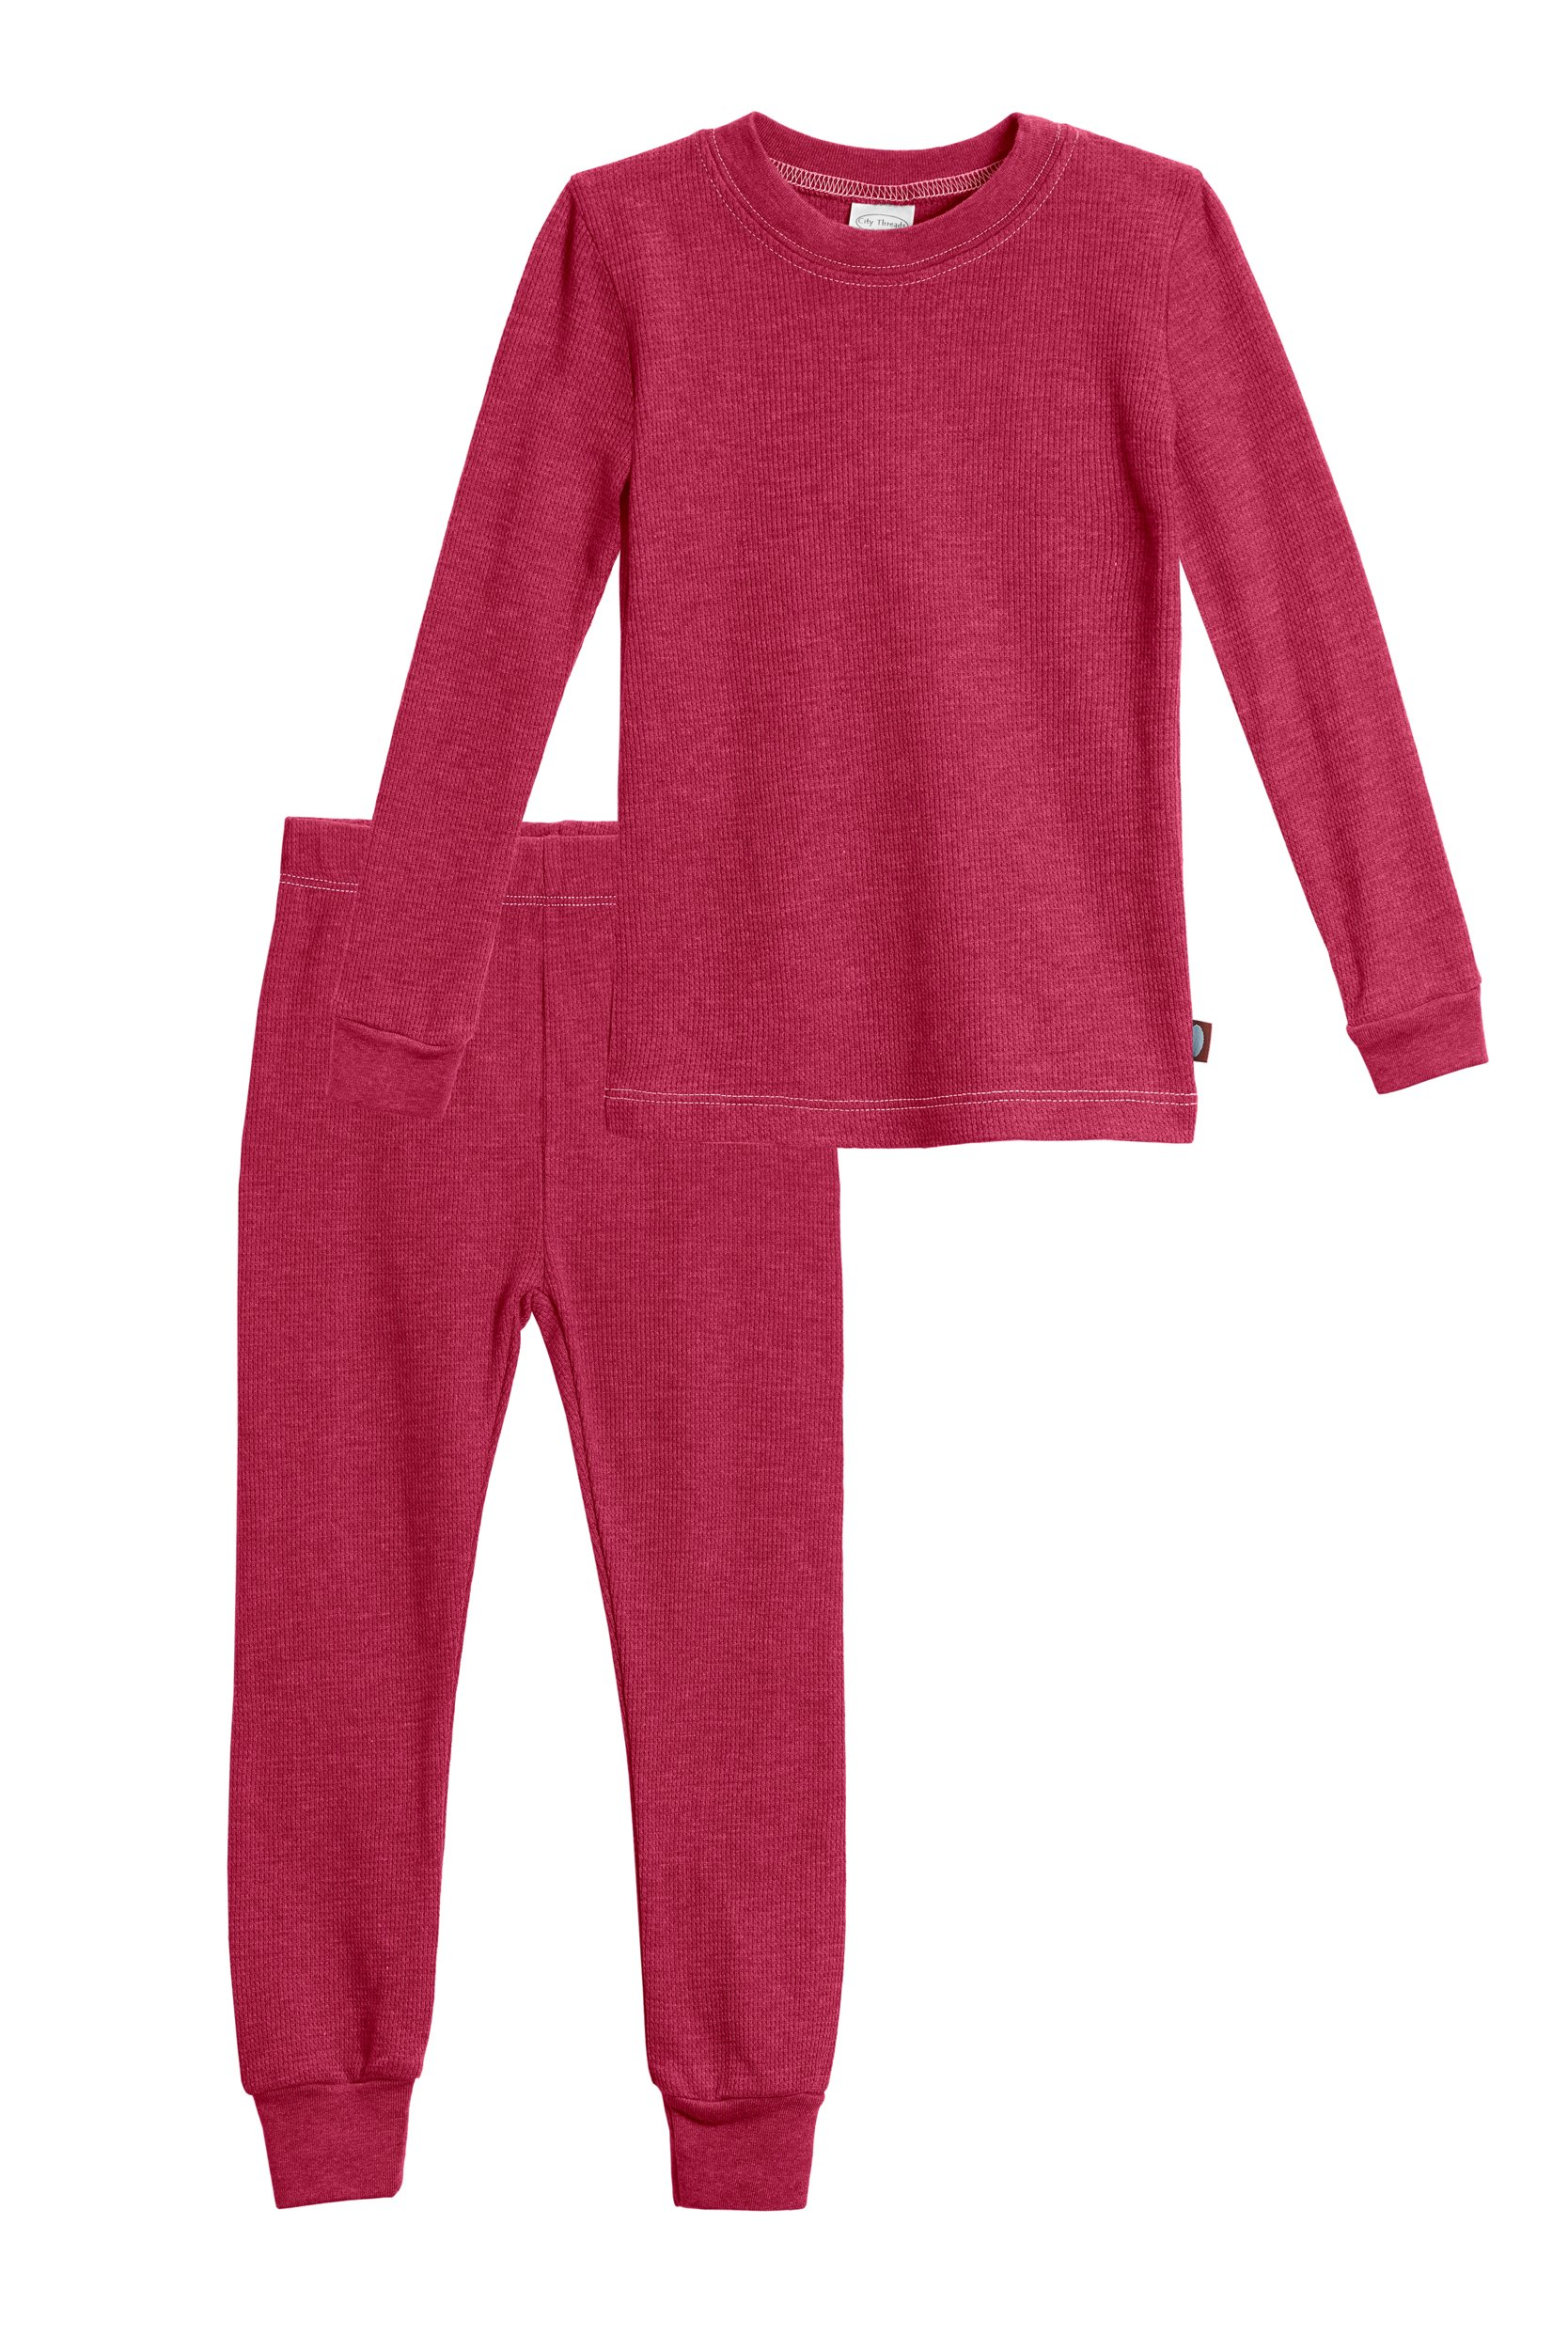 City Threads Little Girls Thermal Underwear Set Perfect for Sensitive Skin SPD Sensory Friendly, Red- 3T by City Threads